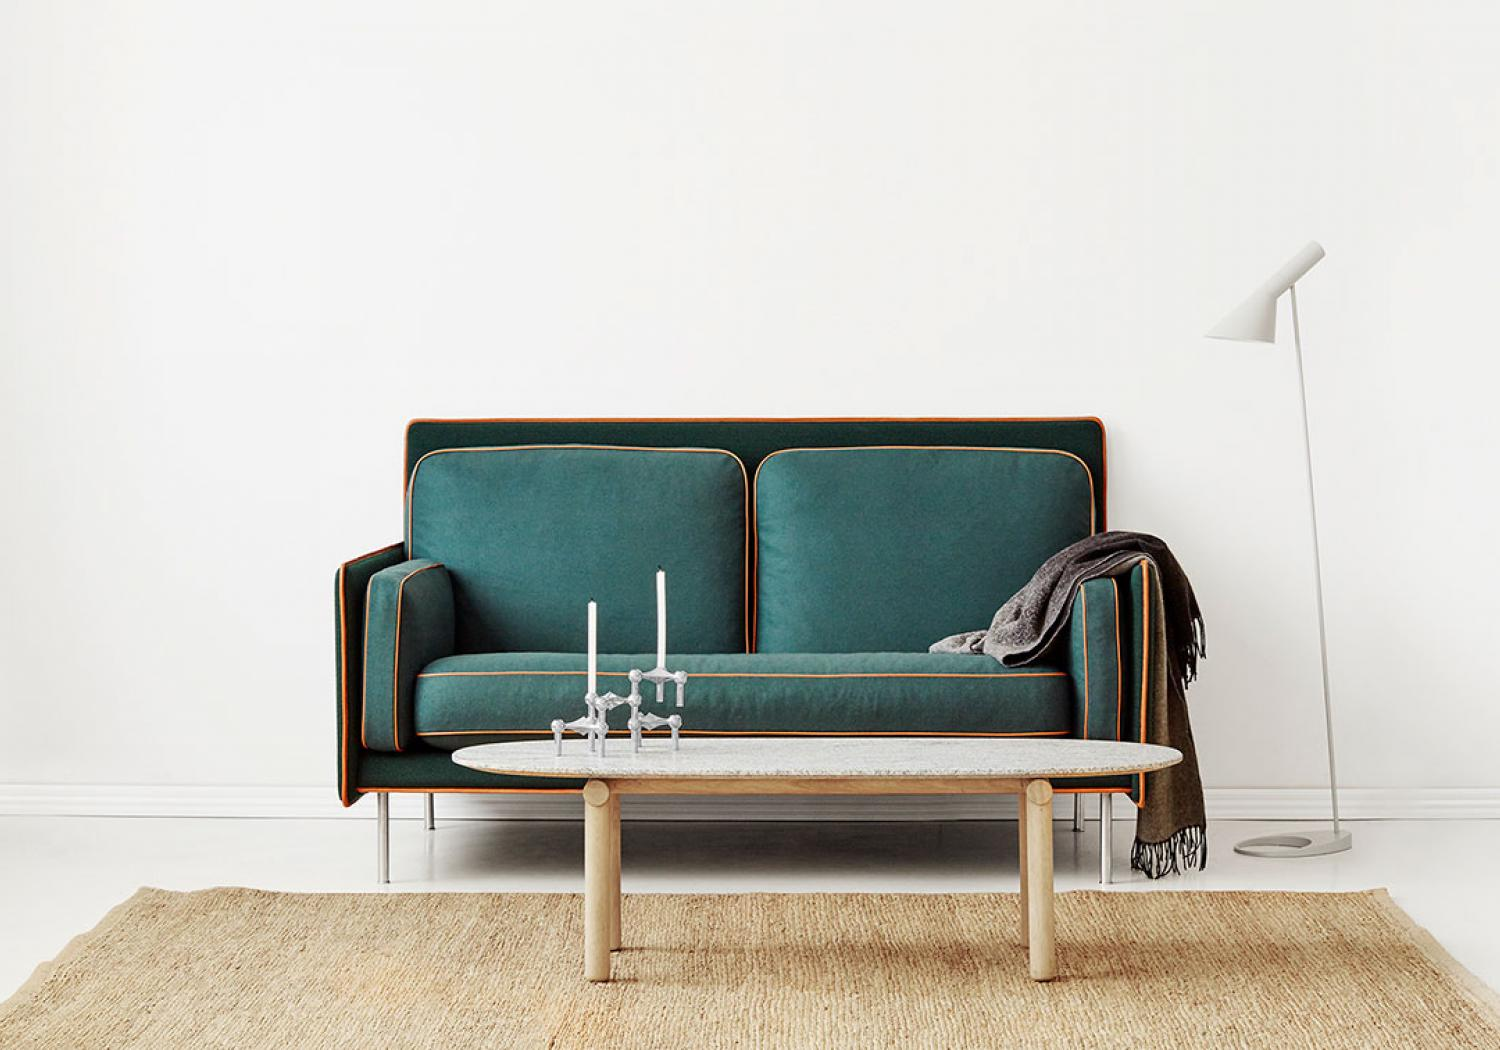 Hector Sofa, Erik Jørgensen, Furniture of the year 2016, holm° | great northern indoors